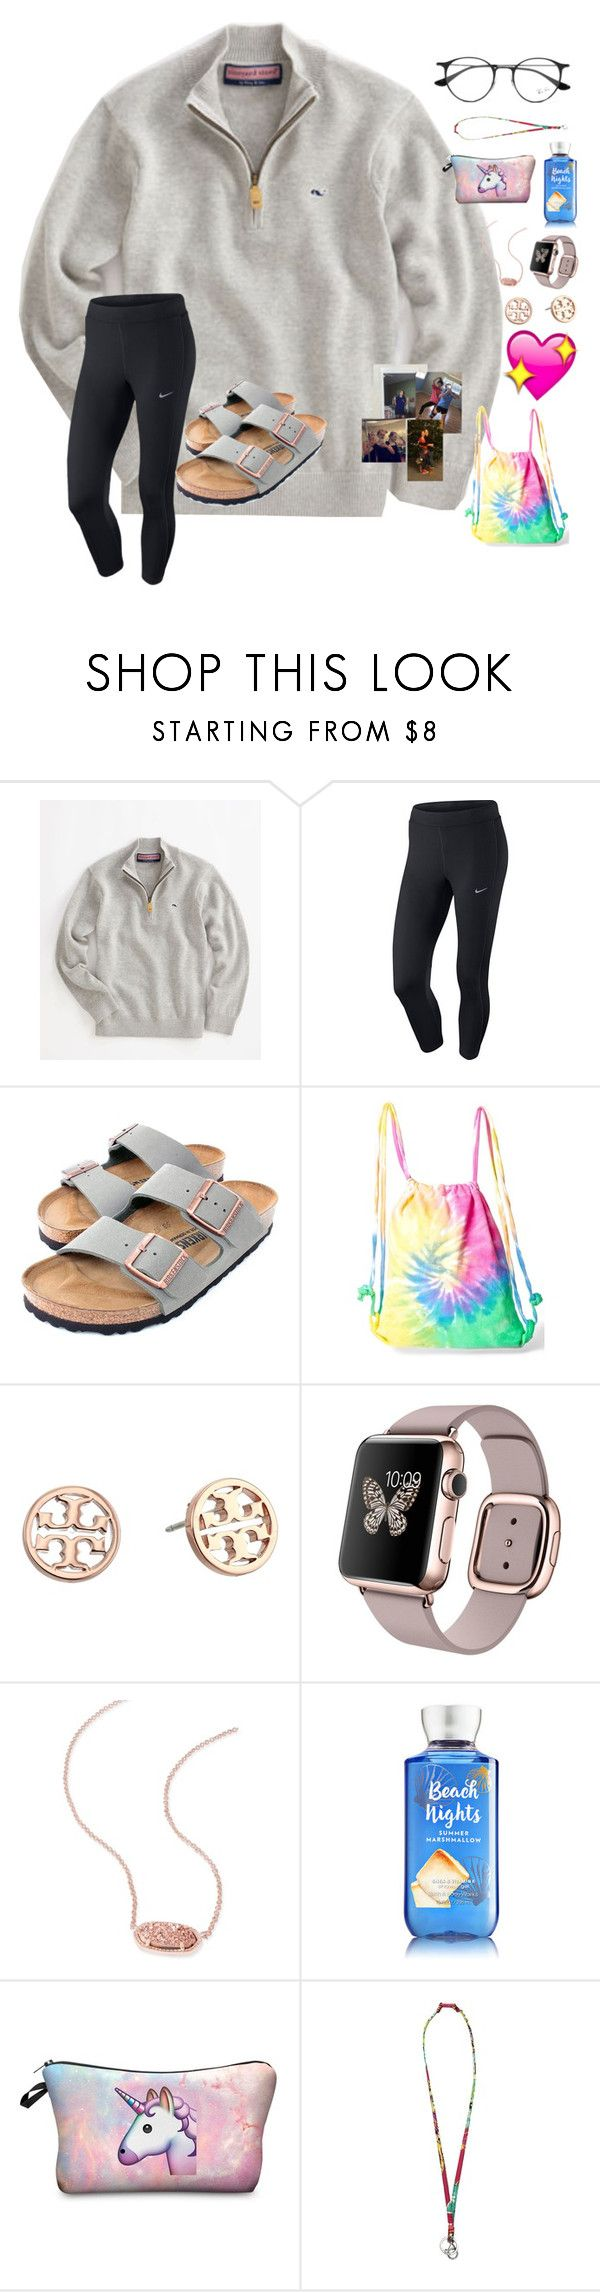 """""""~l-ayyyeeee-zy~"""" by taybug2147 ❤ liked on Polyvore featuring Vineyard Vines, NIKE, Birkenstock, Colortone, Tory Burch, Kendra Scott, Vera Bradley and Ray-Ban"""